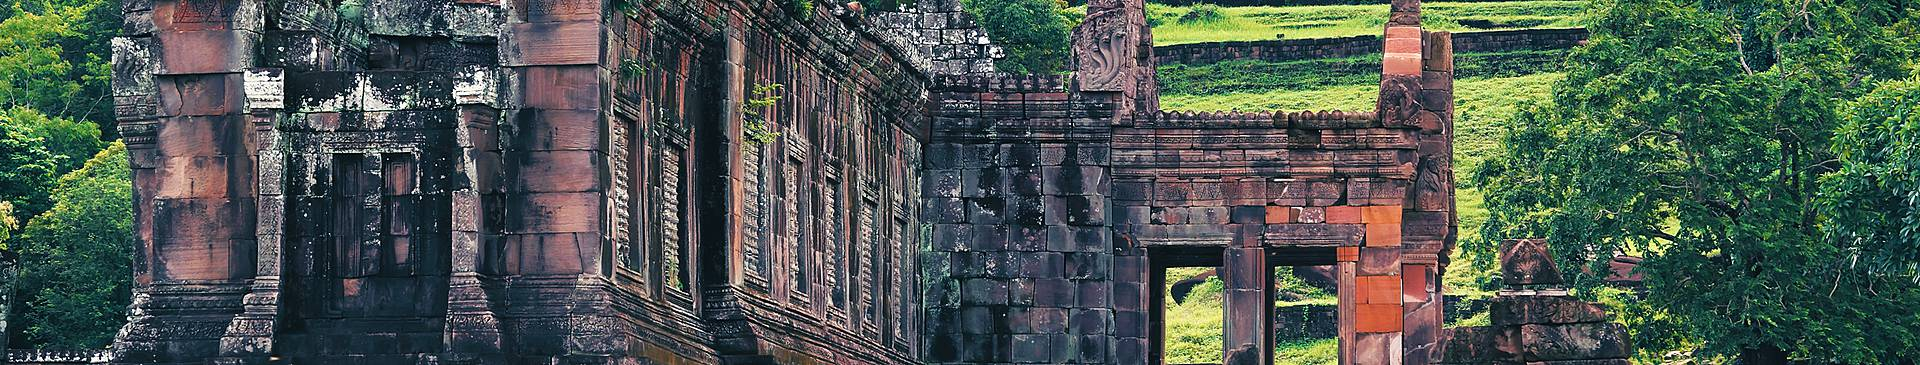 Historical sites in Laos